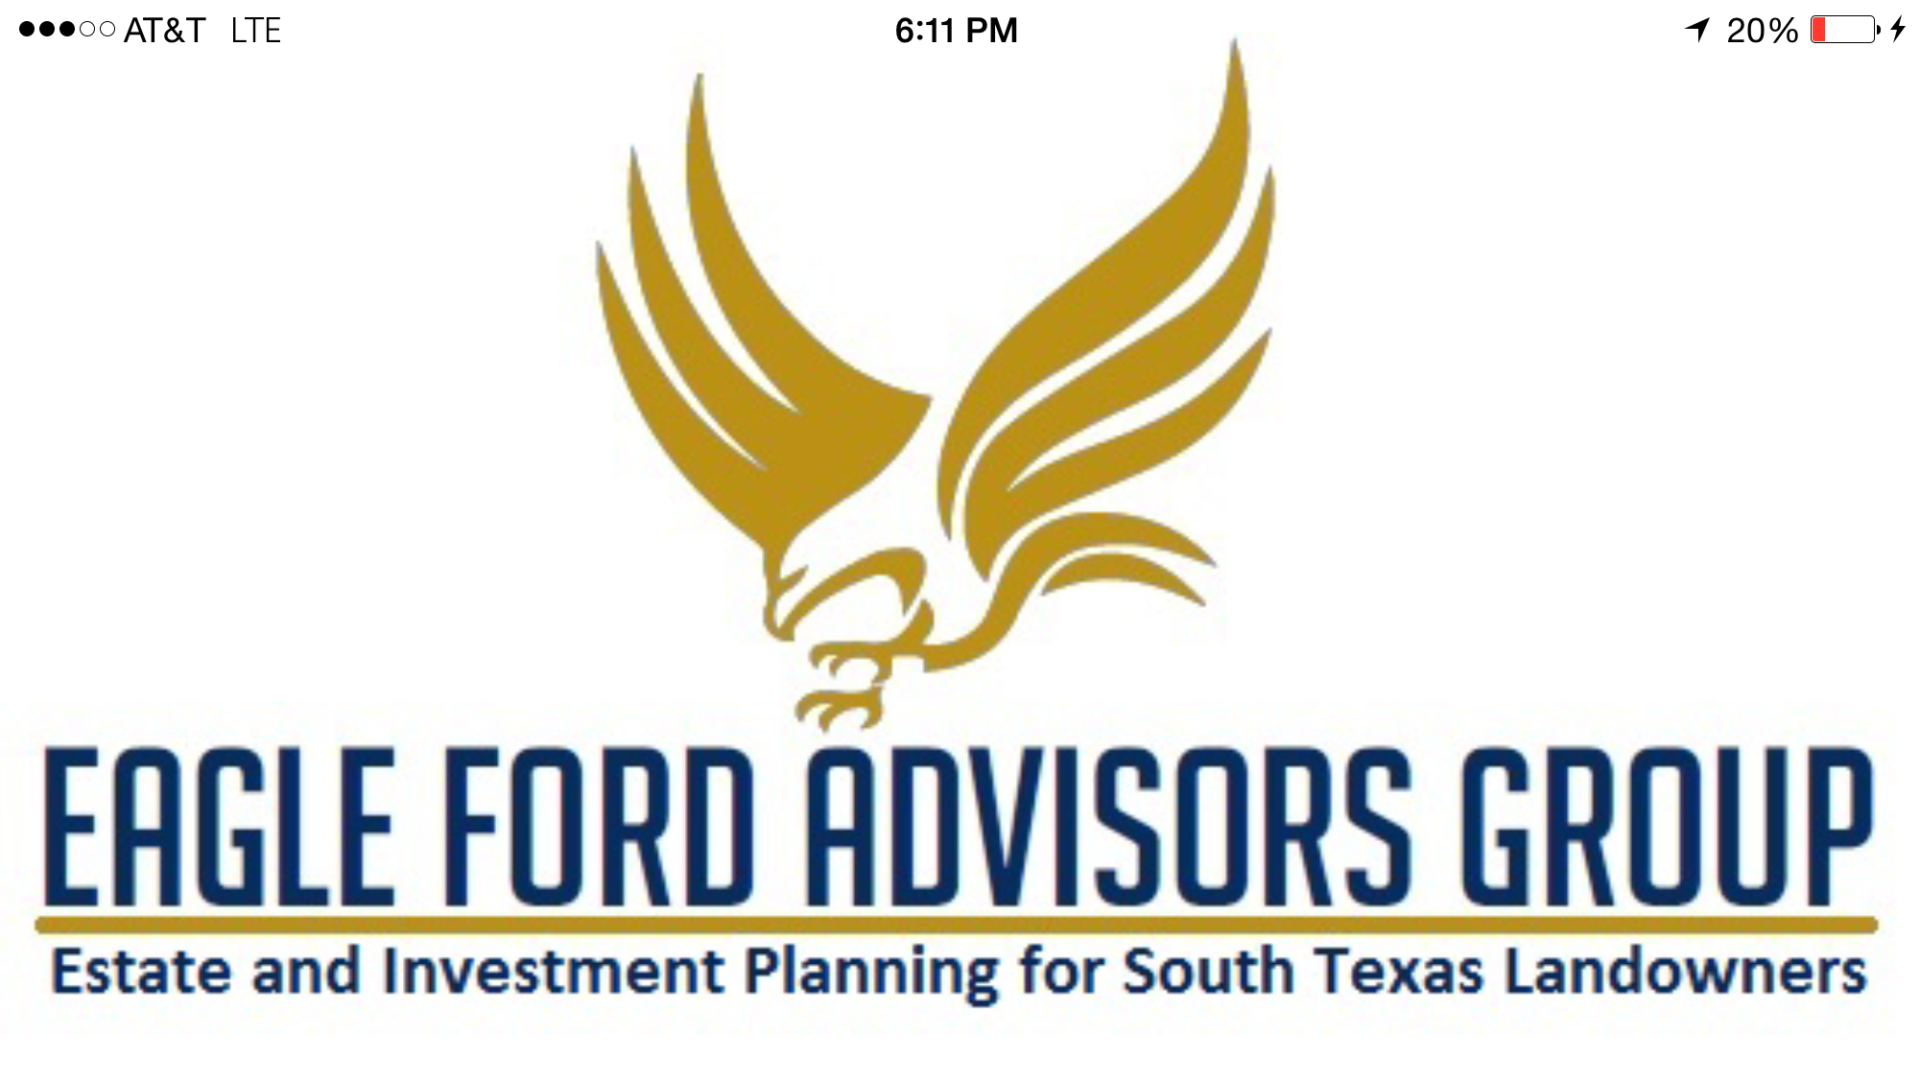 Eagle Ford Advisors Group